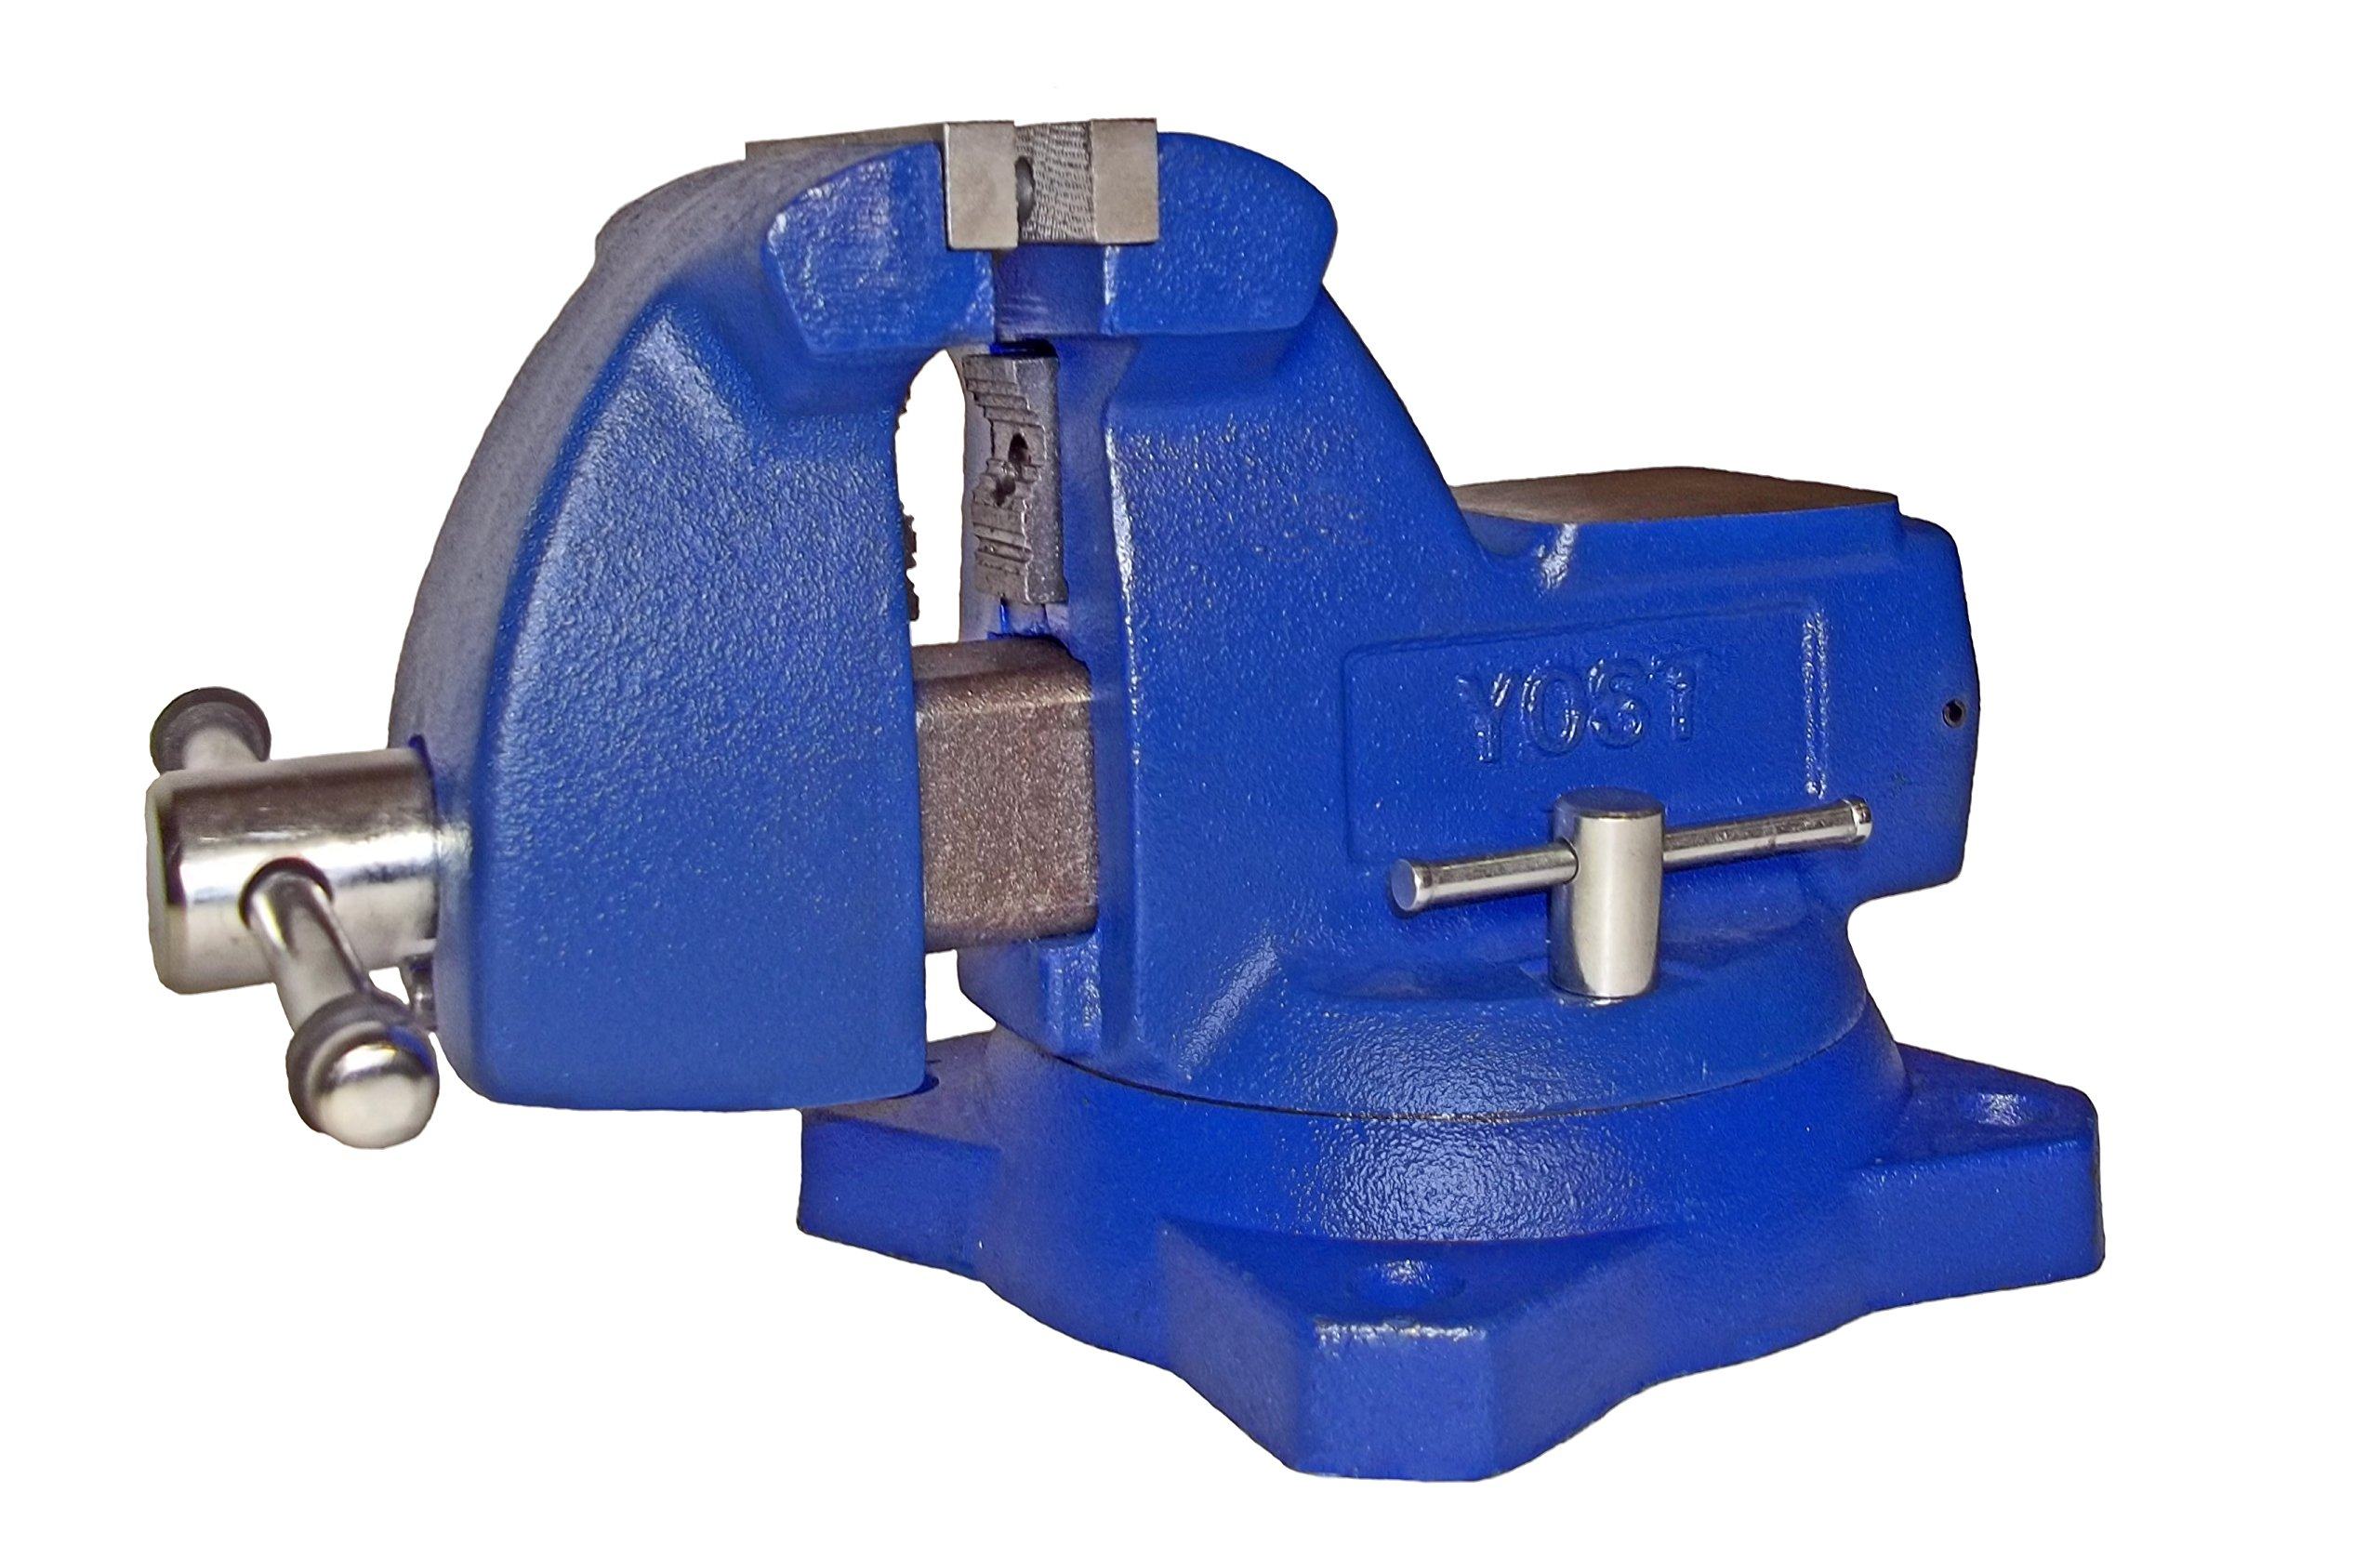 Yost Vises 660 6''Mechanics Bench Vise by Yost Tools